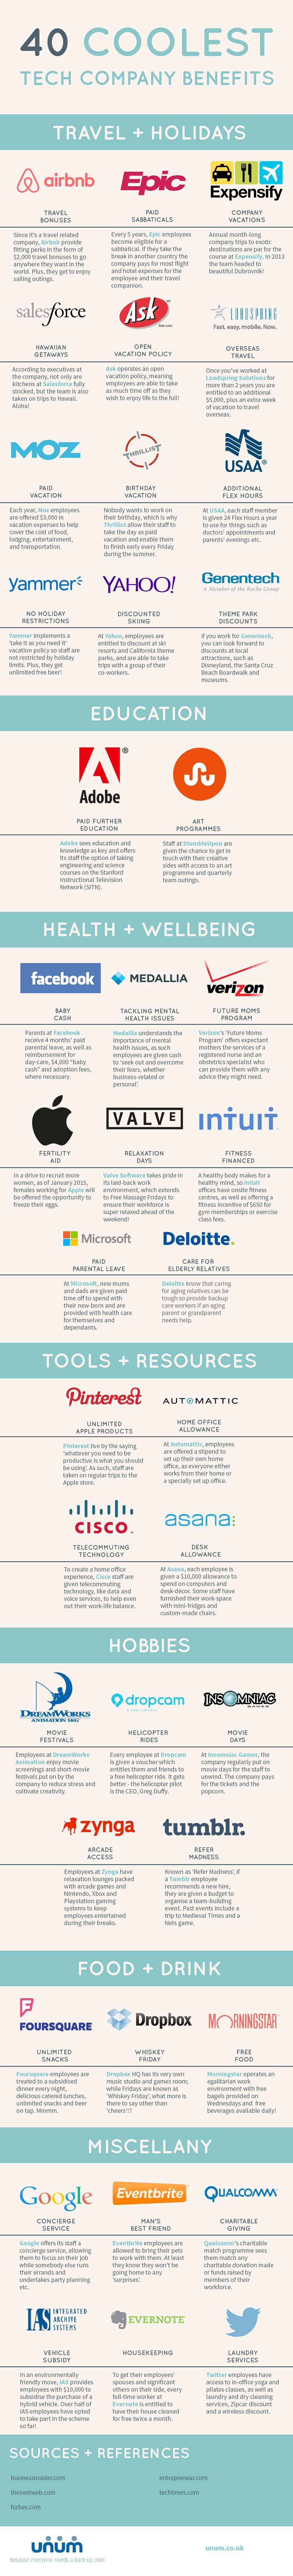 The 40 Coolest Tech Company Benefits #Infographic